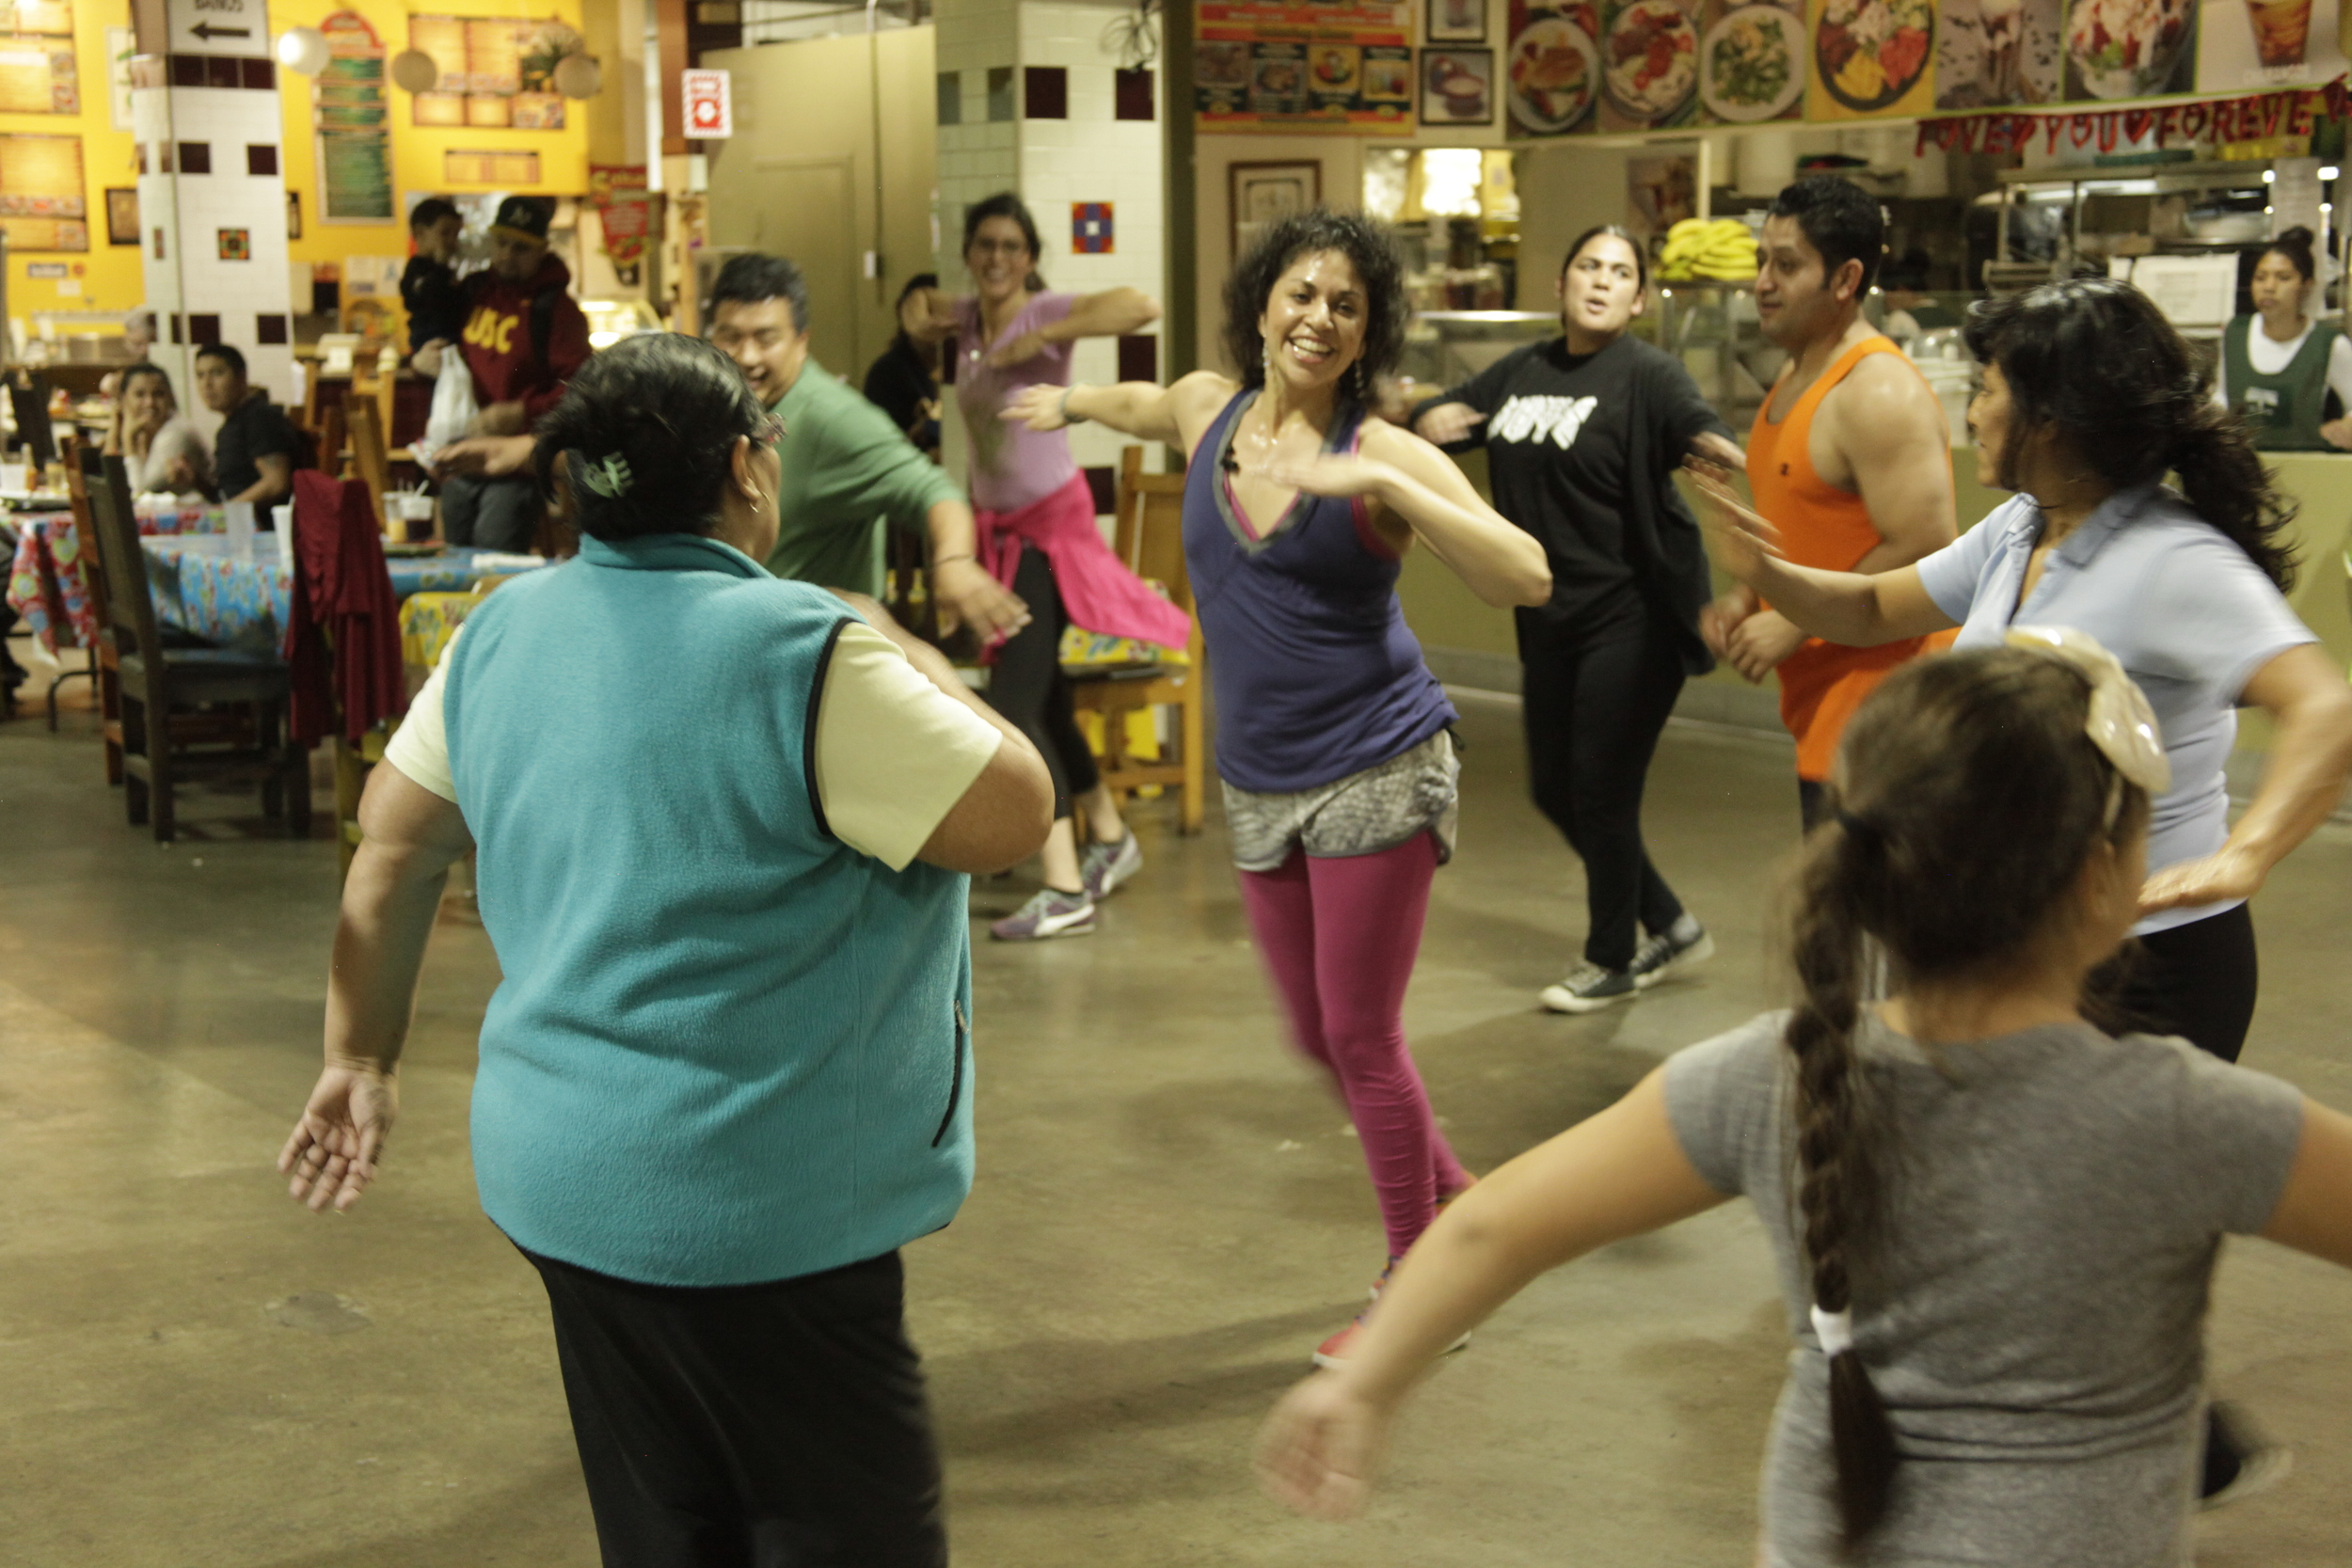 Dance class with live music by Buyepongo, Mercado La Paloma, L.A